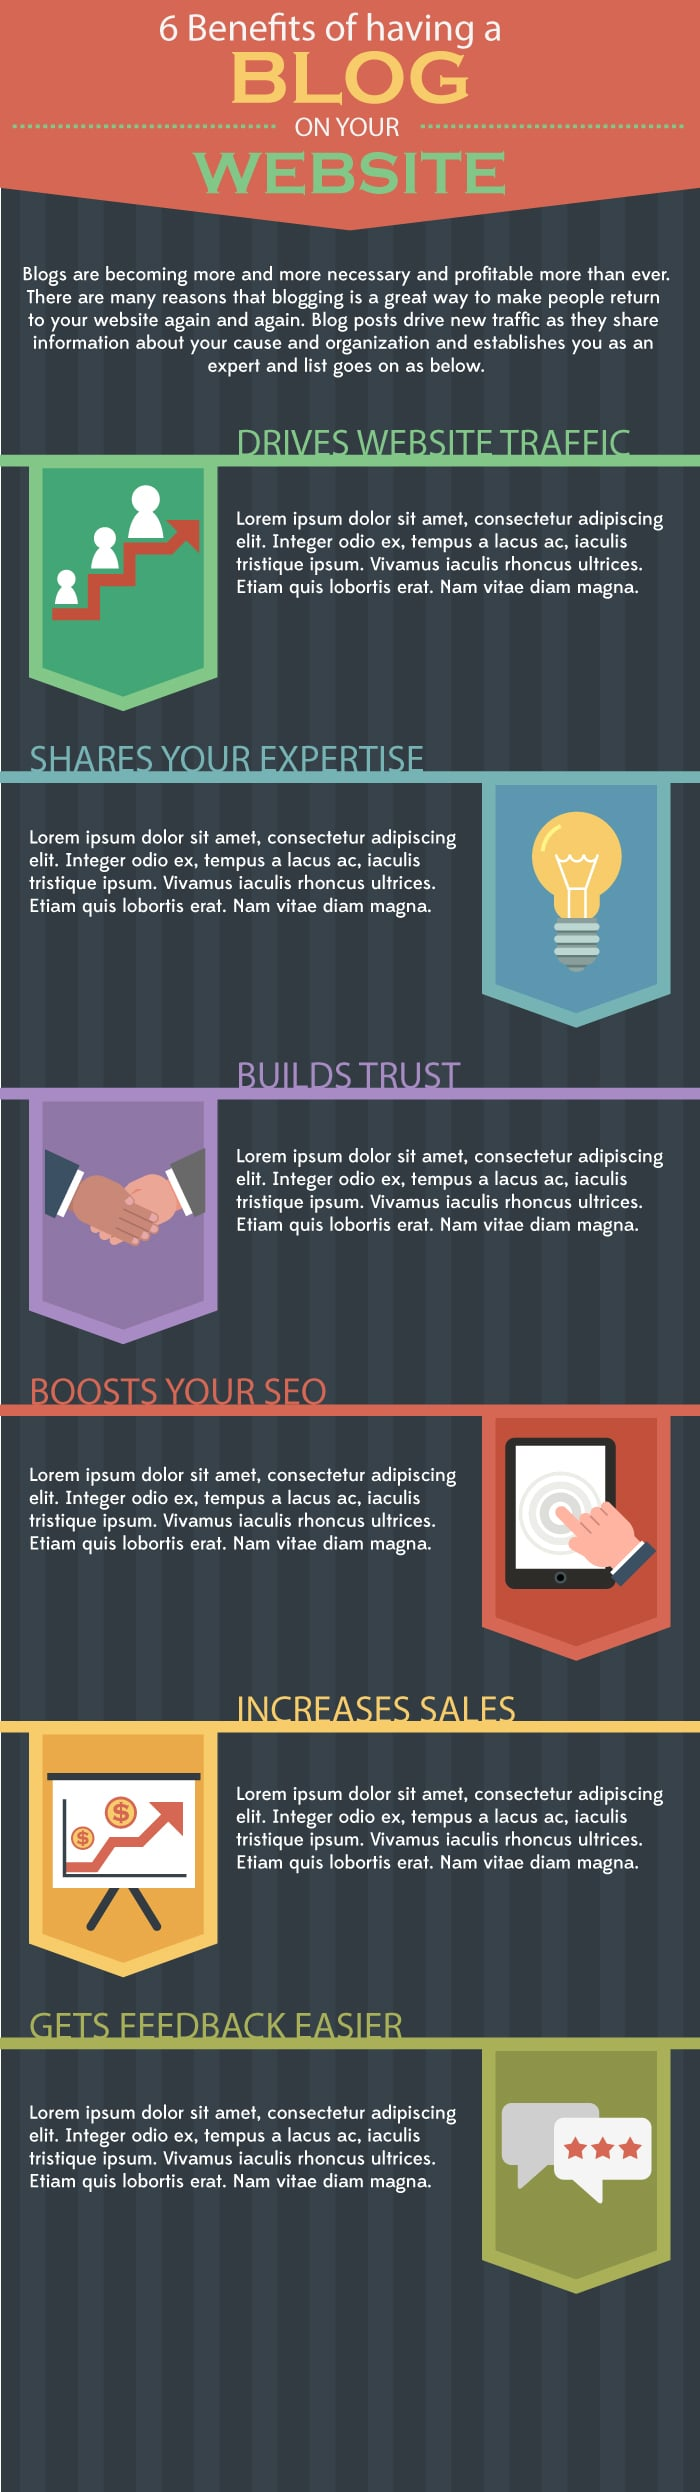 infographic_blog-on-your-website-1